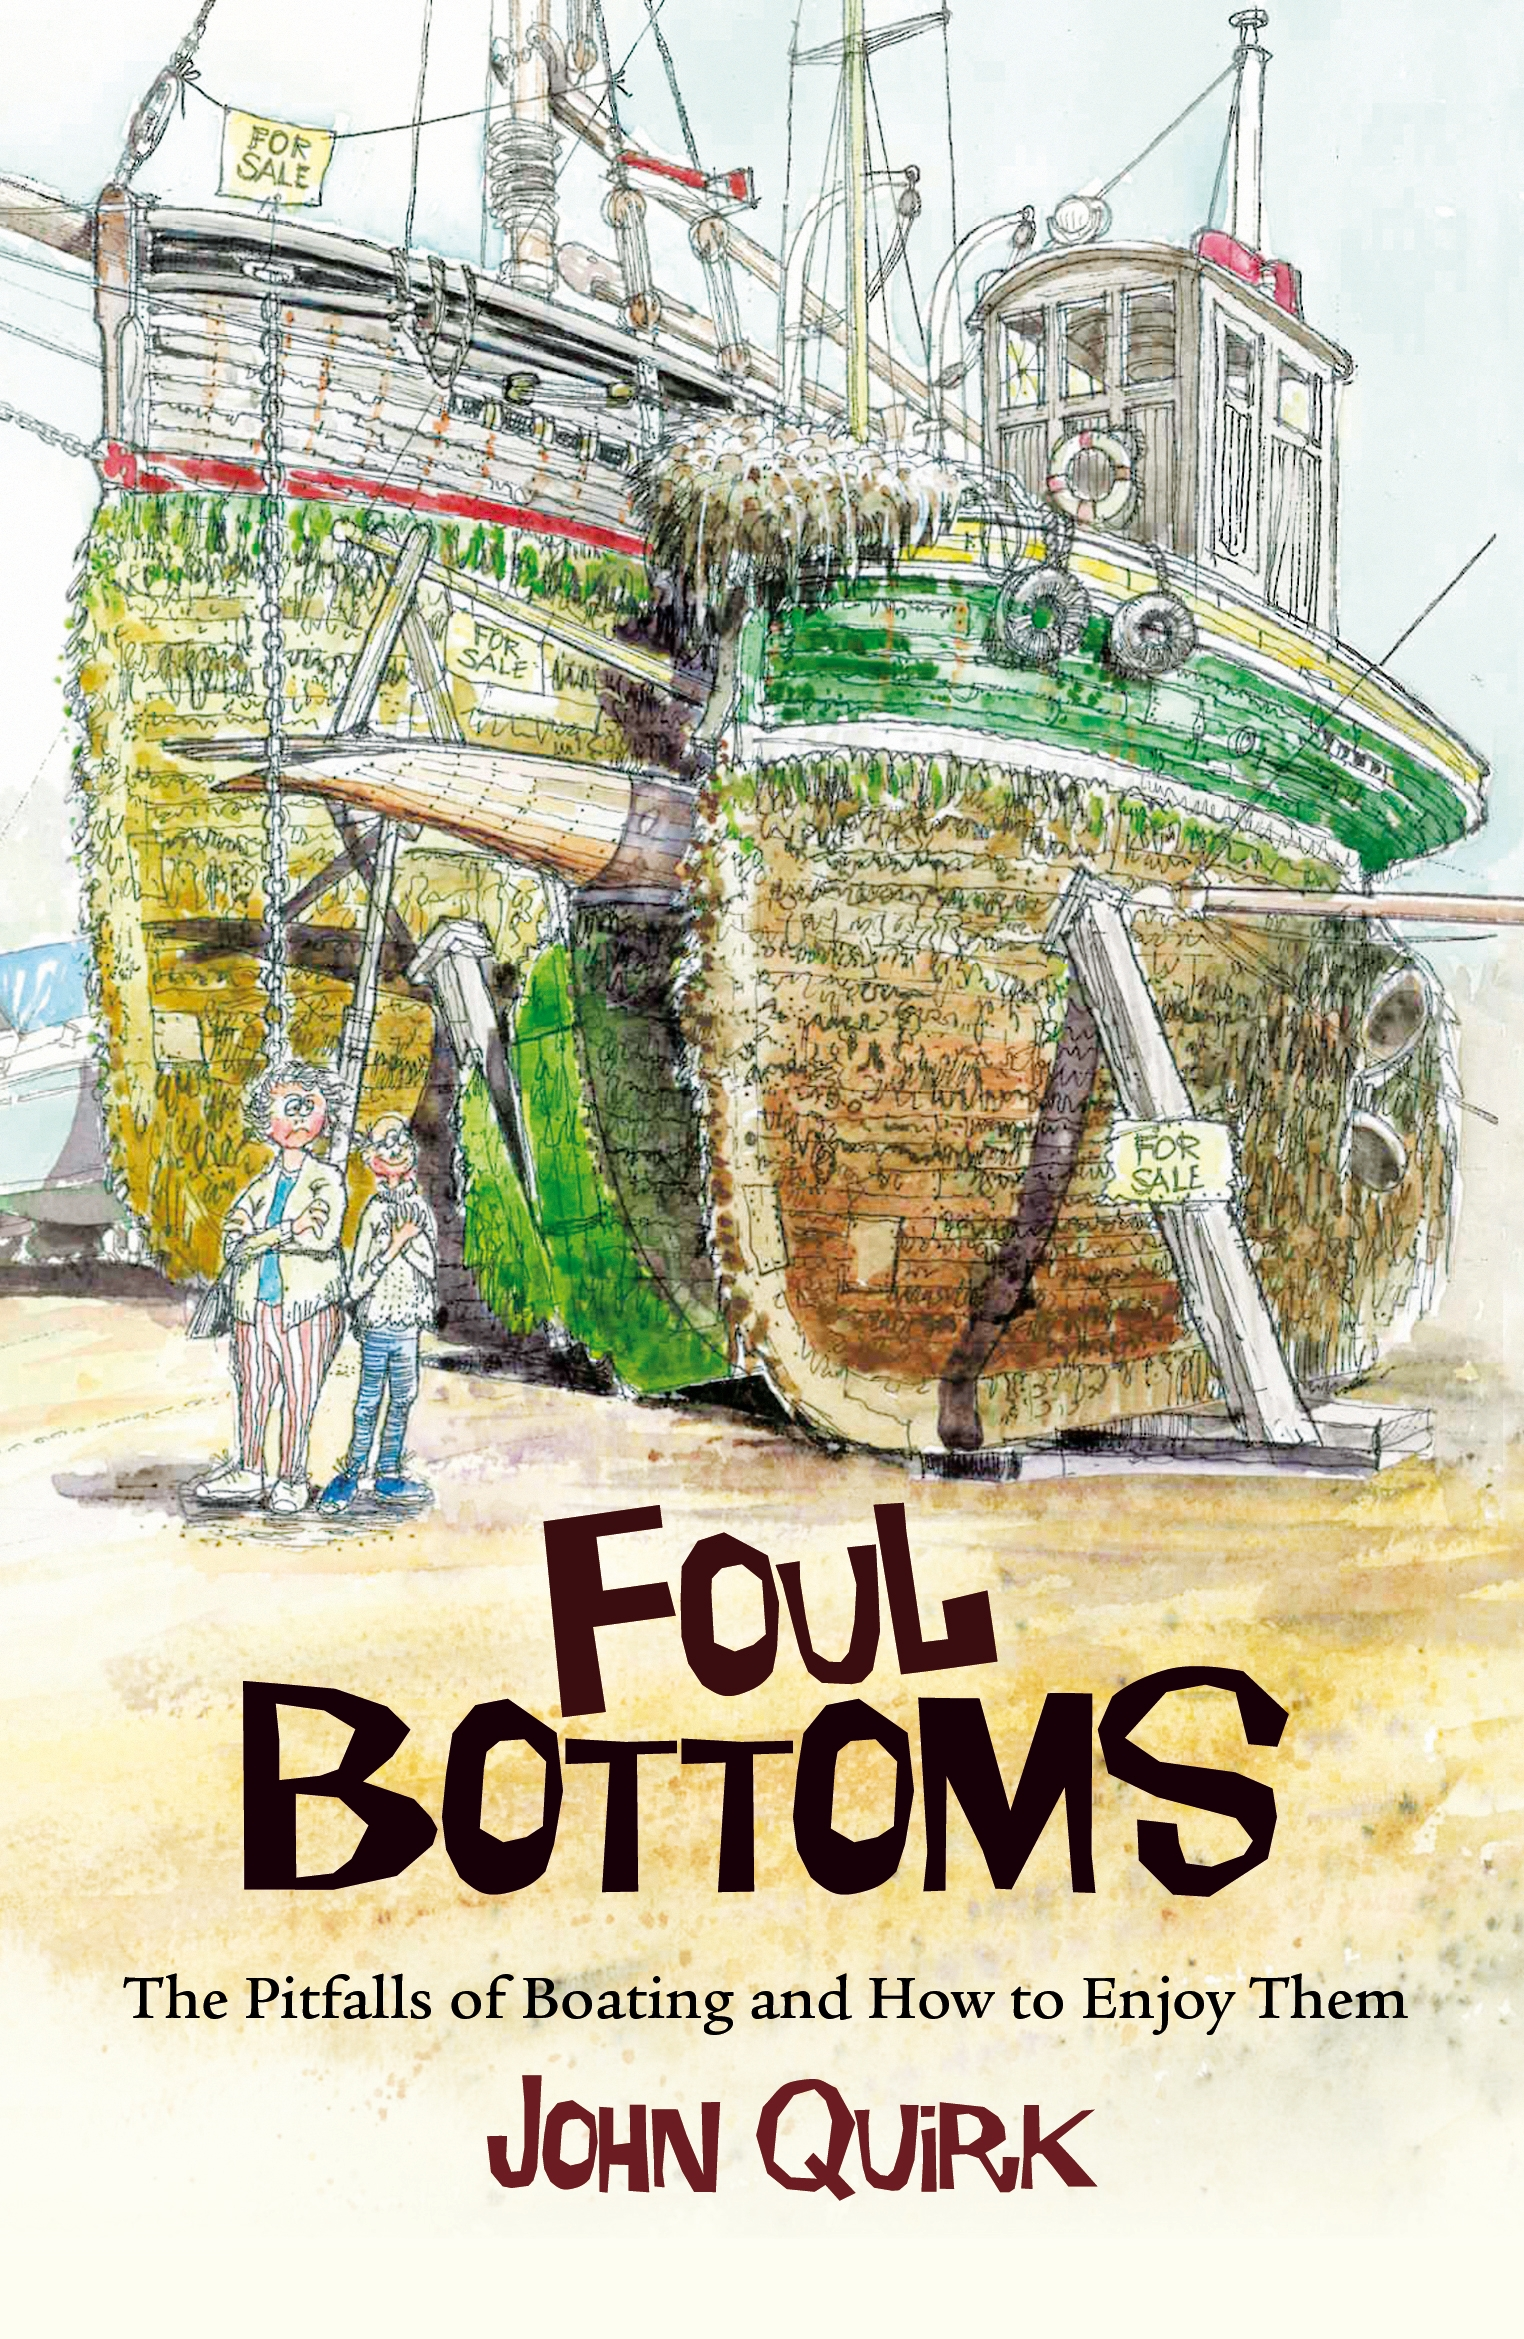 Foul Bottoms The Pitfalls of Boating and How to Enjoy Them